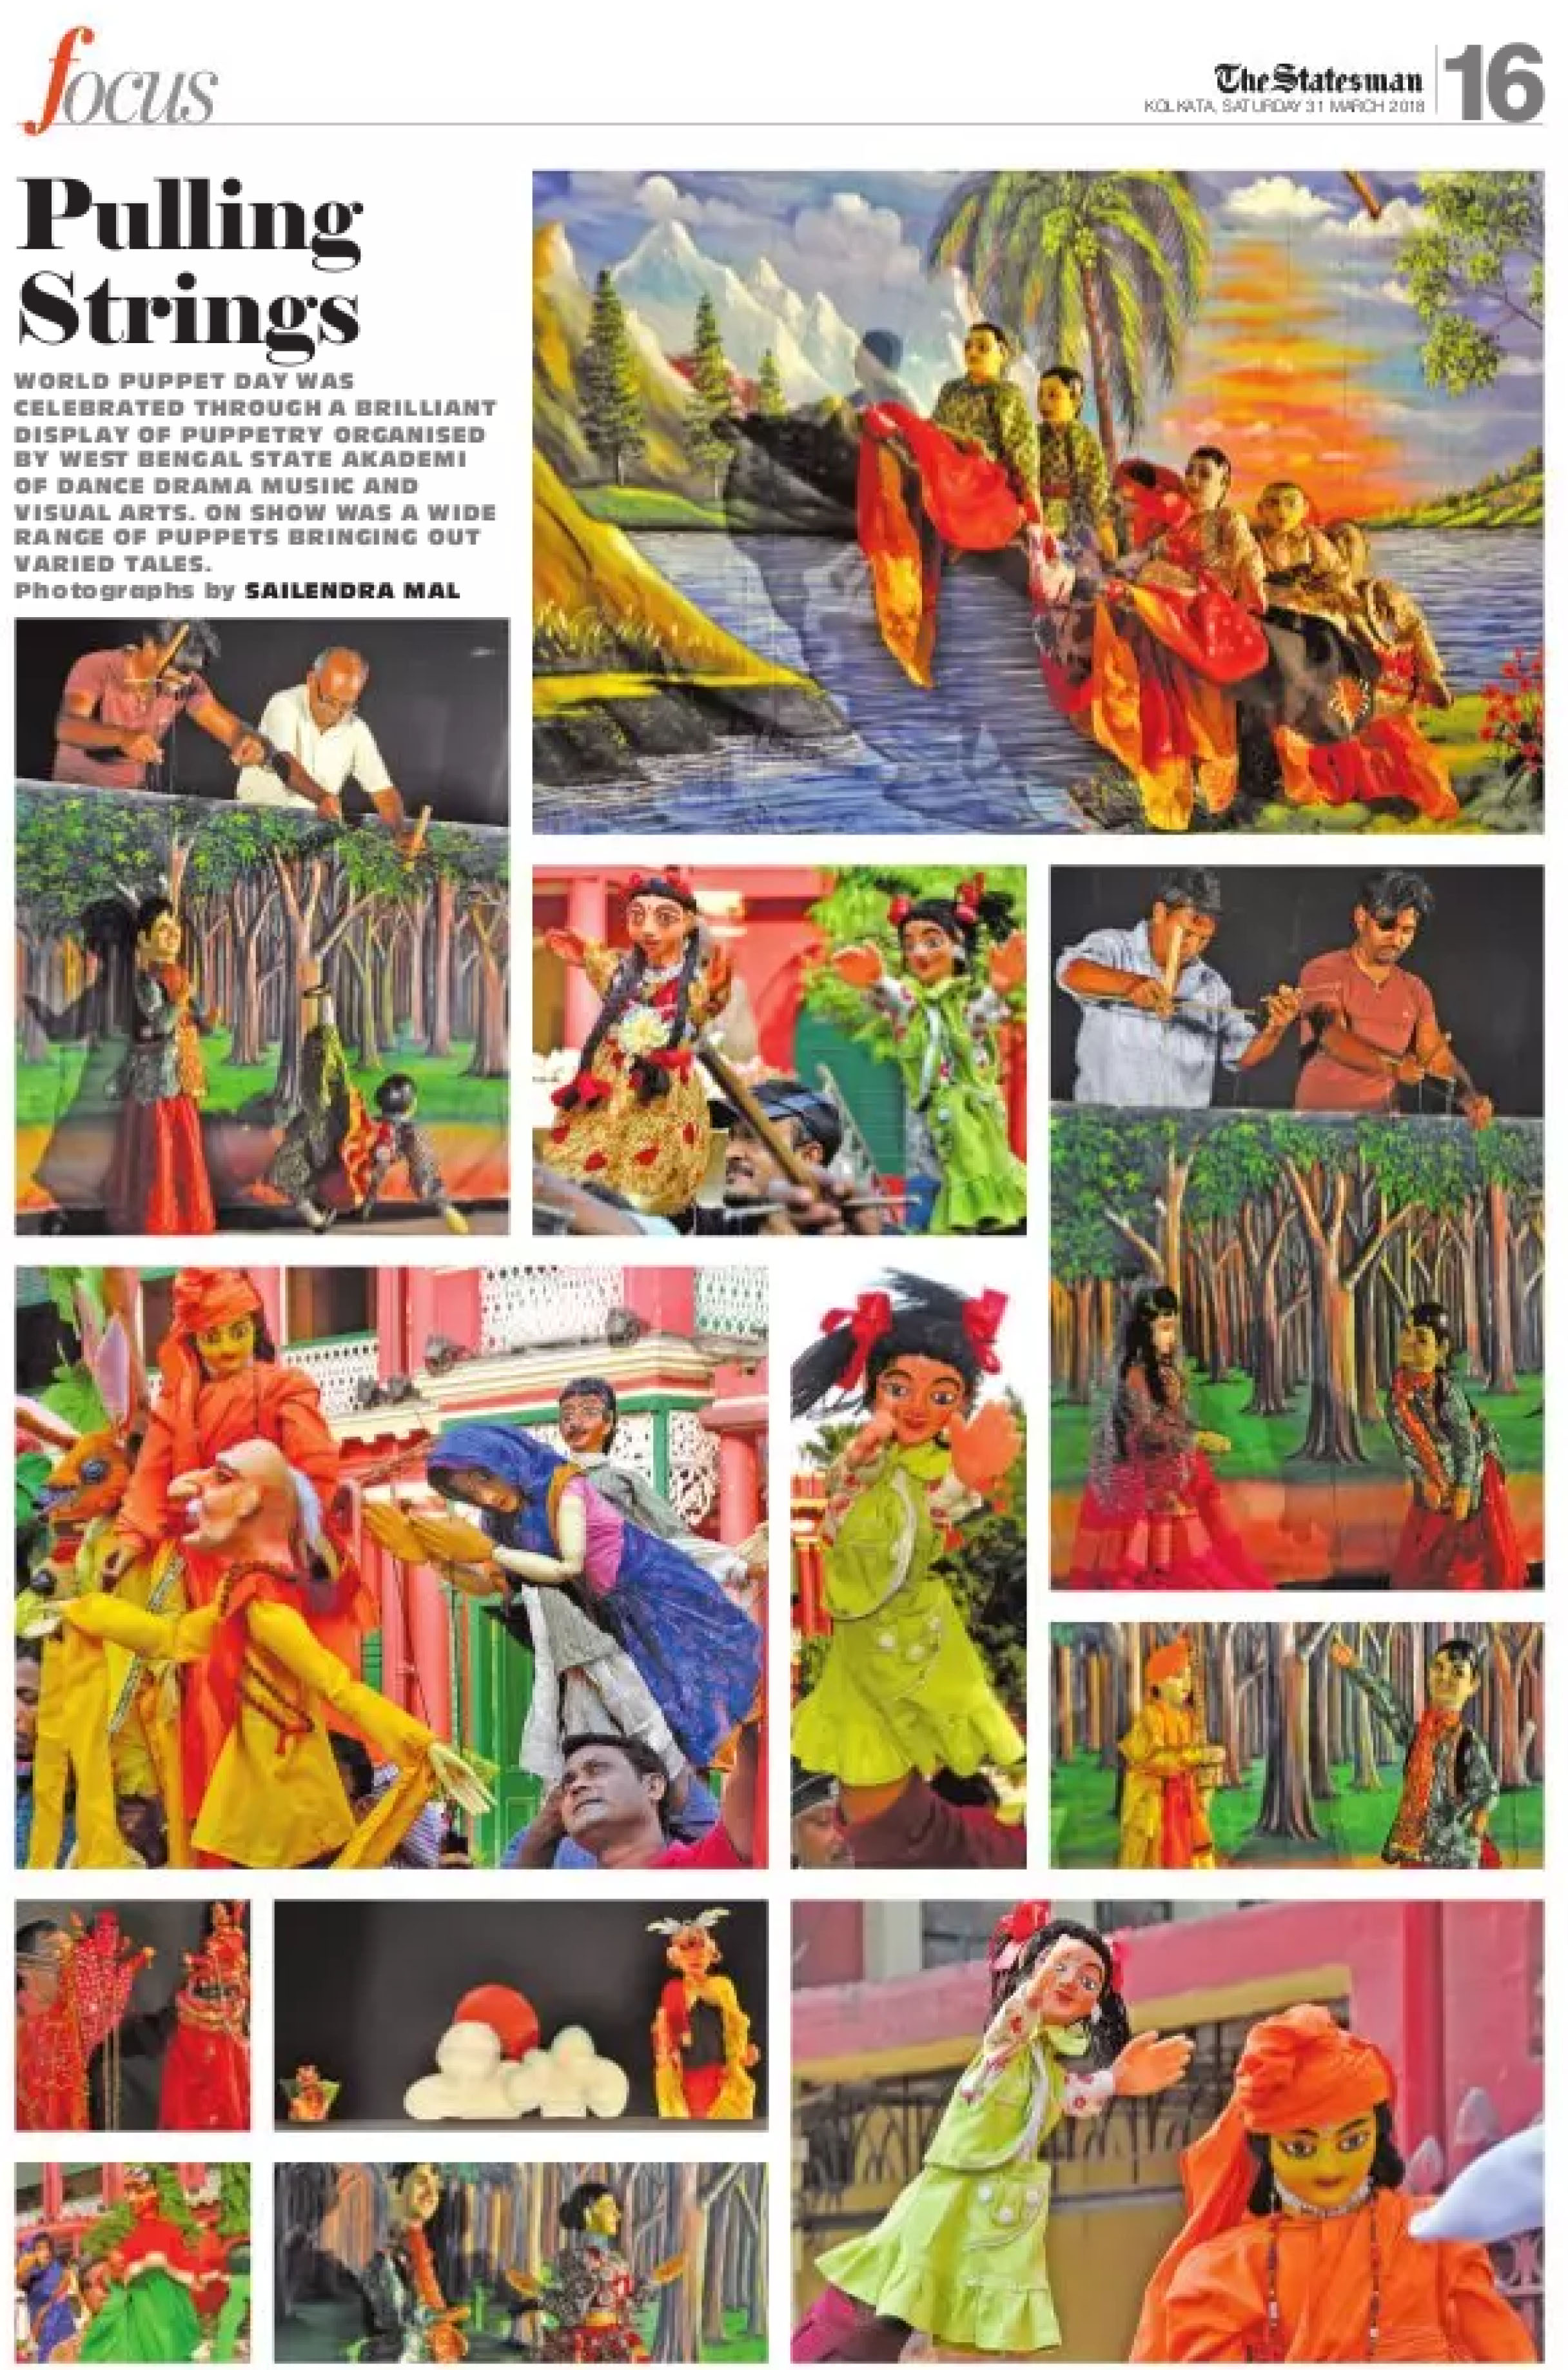 Puppetry on world puppet day covered by The Statesman, 31st March, 2018